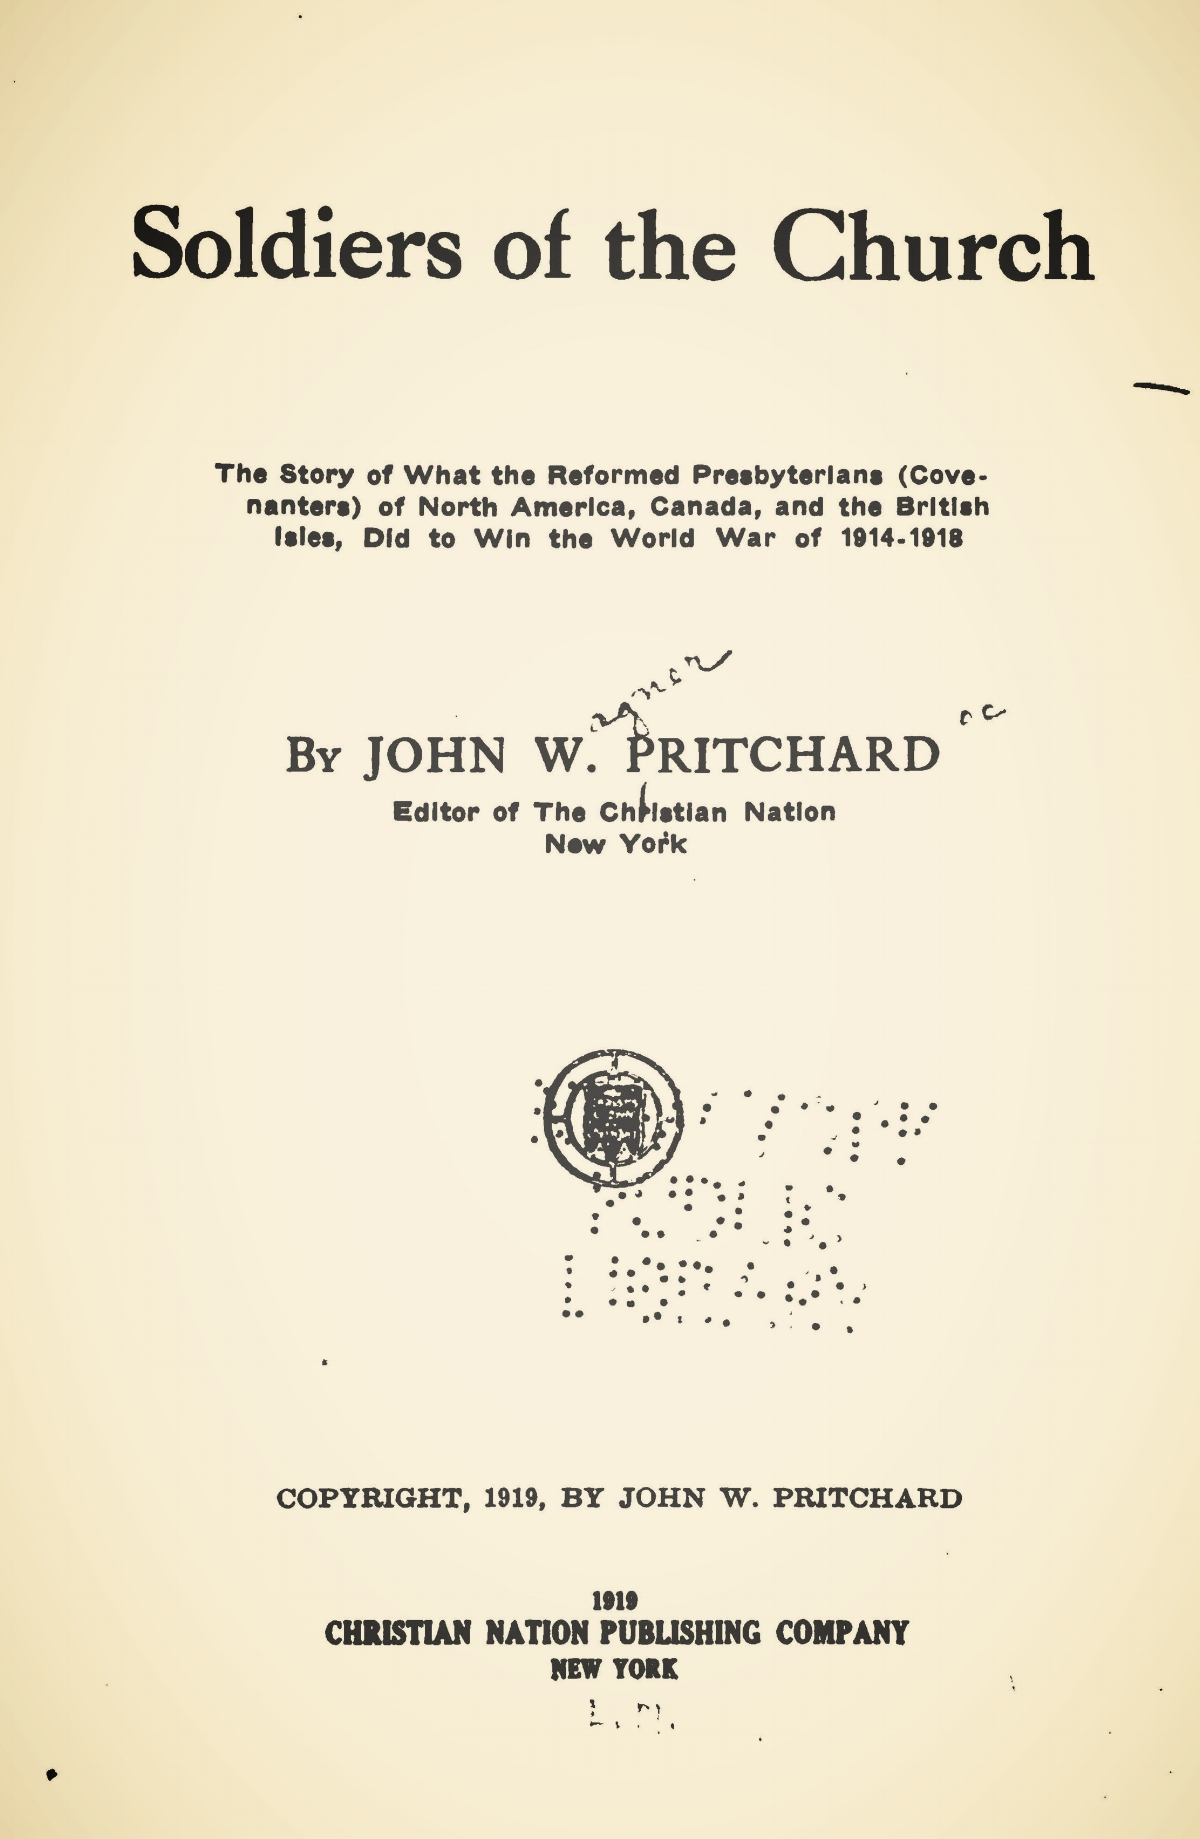 Pritchard, John Wagner, Soldiers of the Church Title Page.jpg